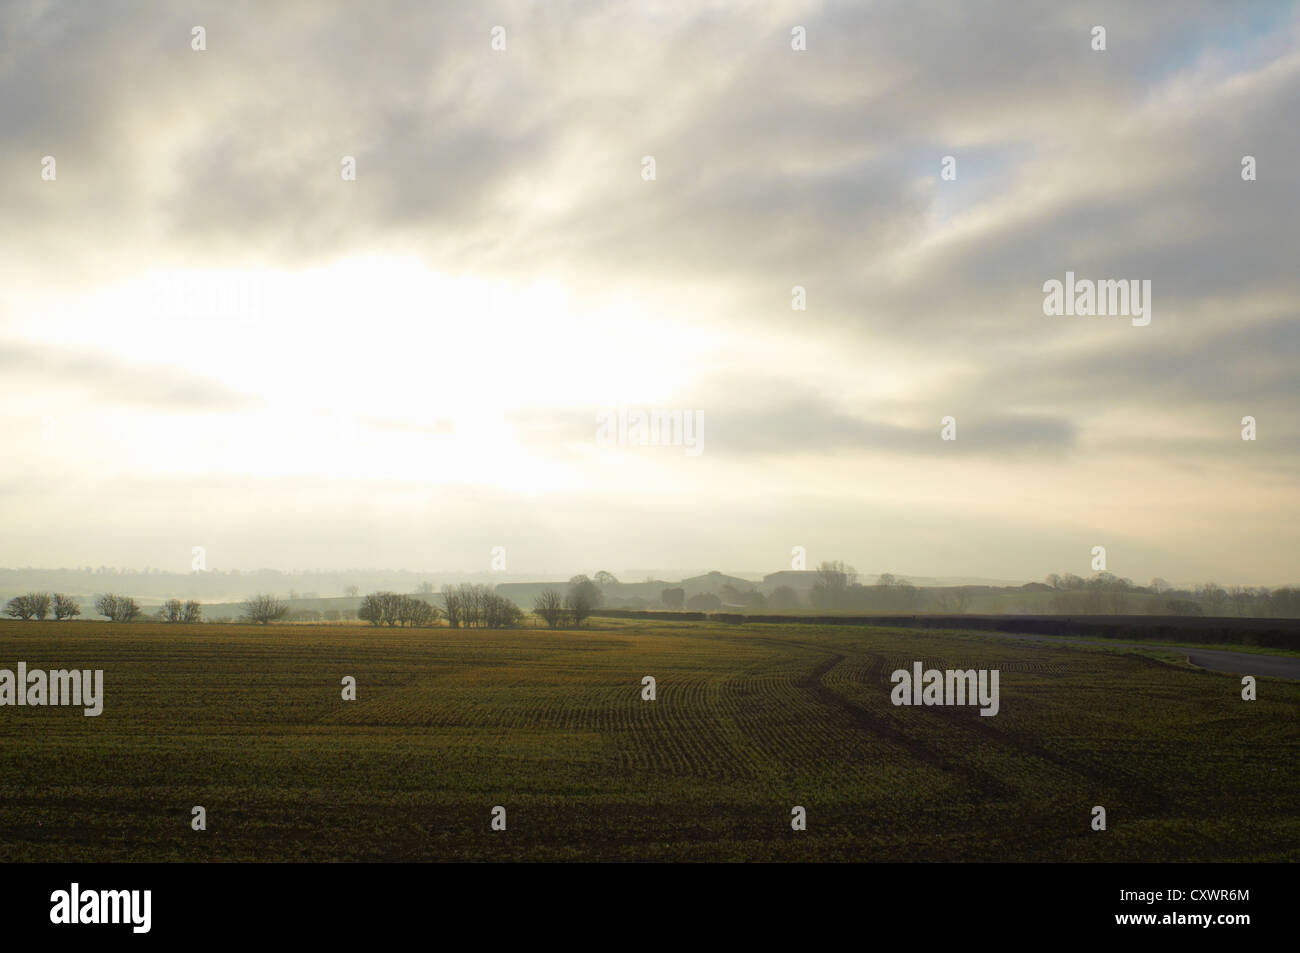 Cloudy sky over rural landscape Stock Photo